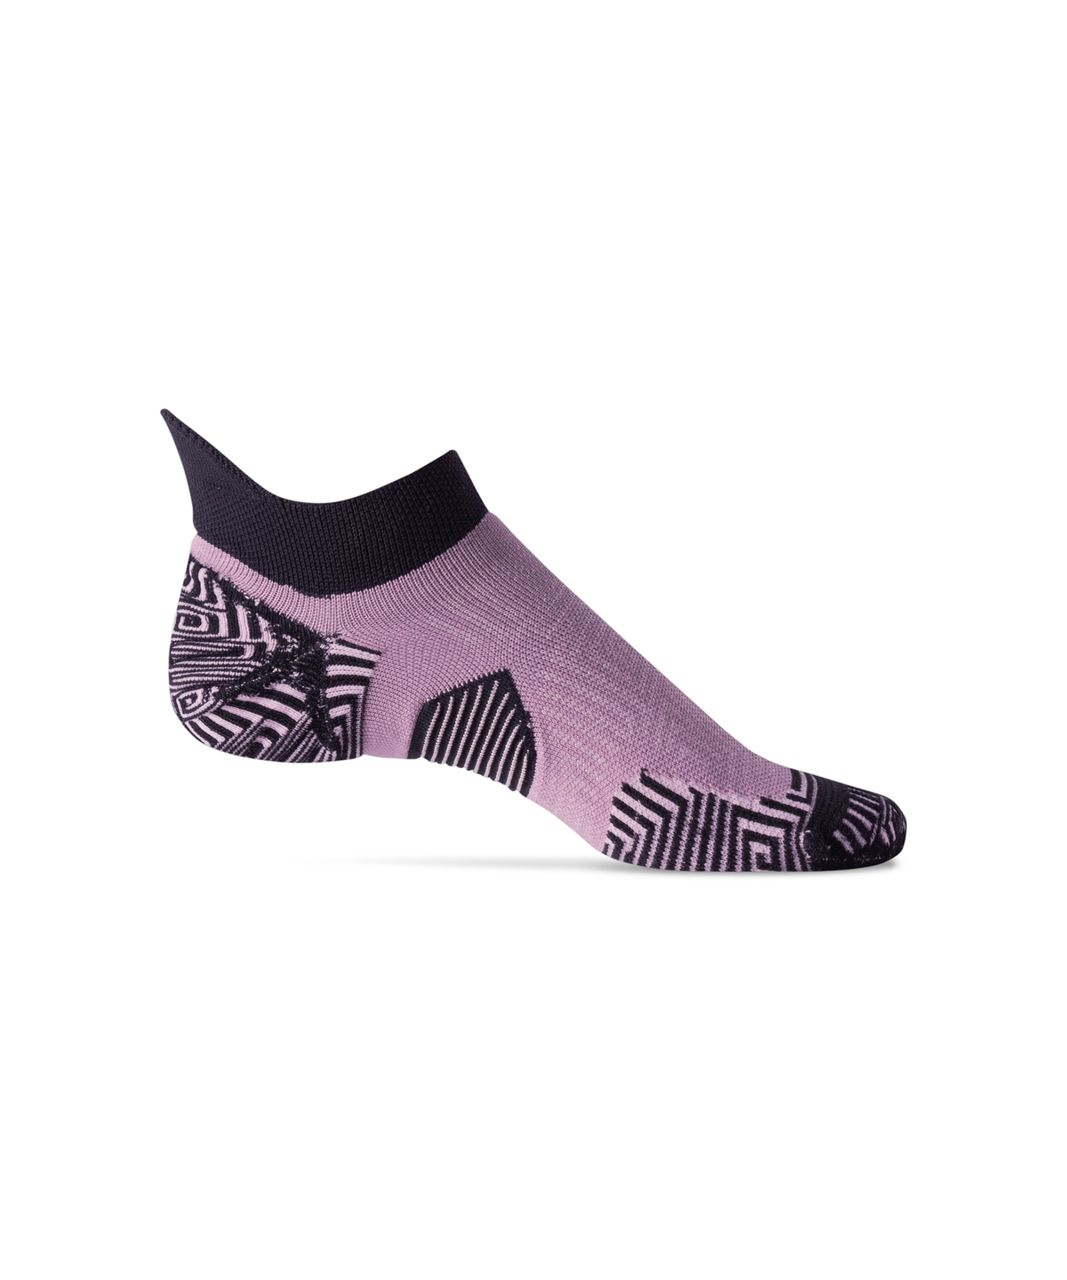 Lululemon Speed Sock *Silver - Black / Dusty Mauve / Rose Blush